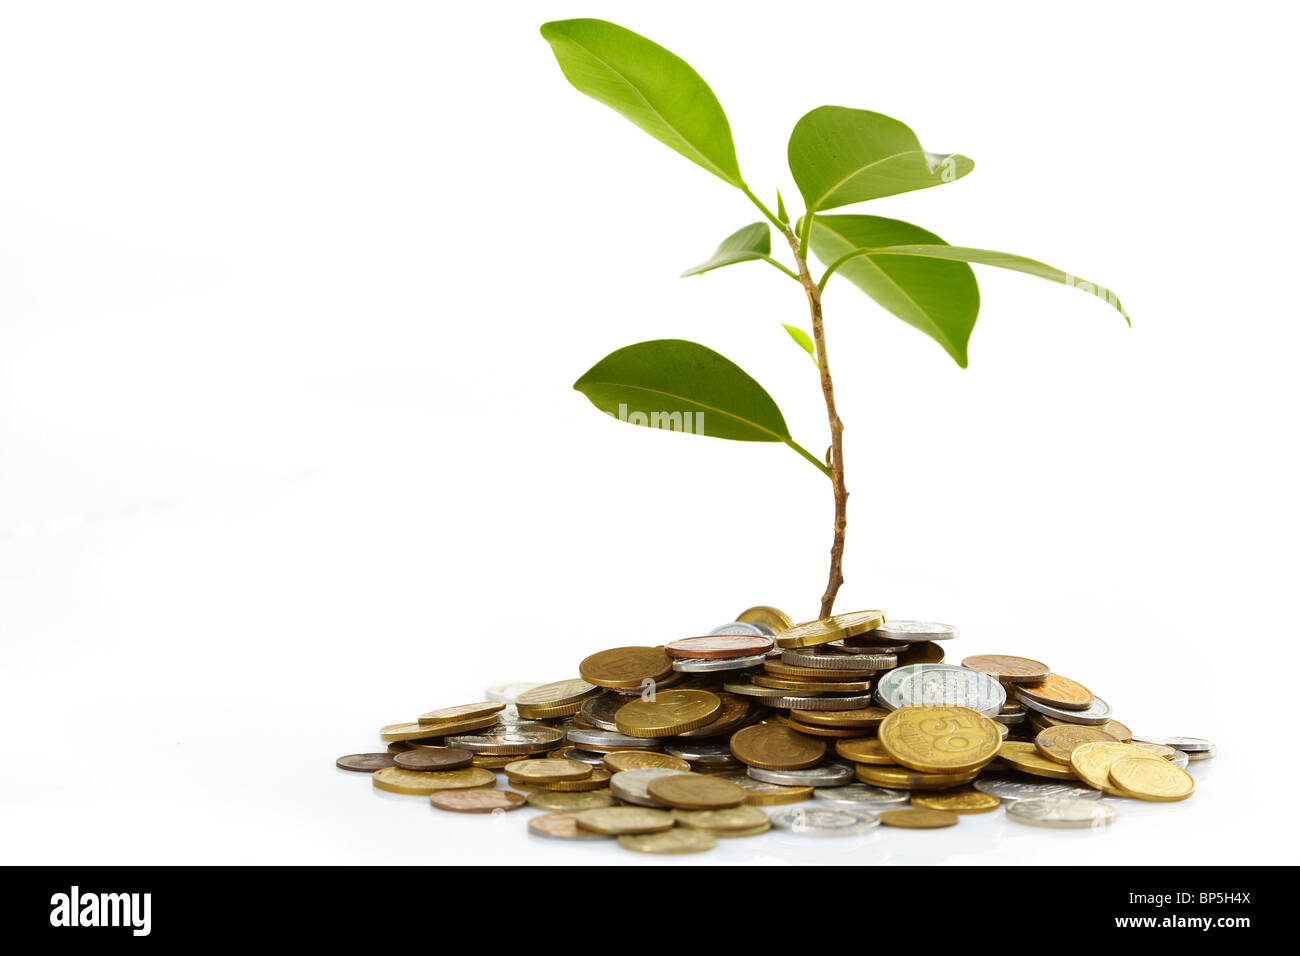 Coins sprout - Stock Image